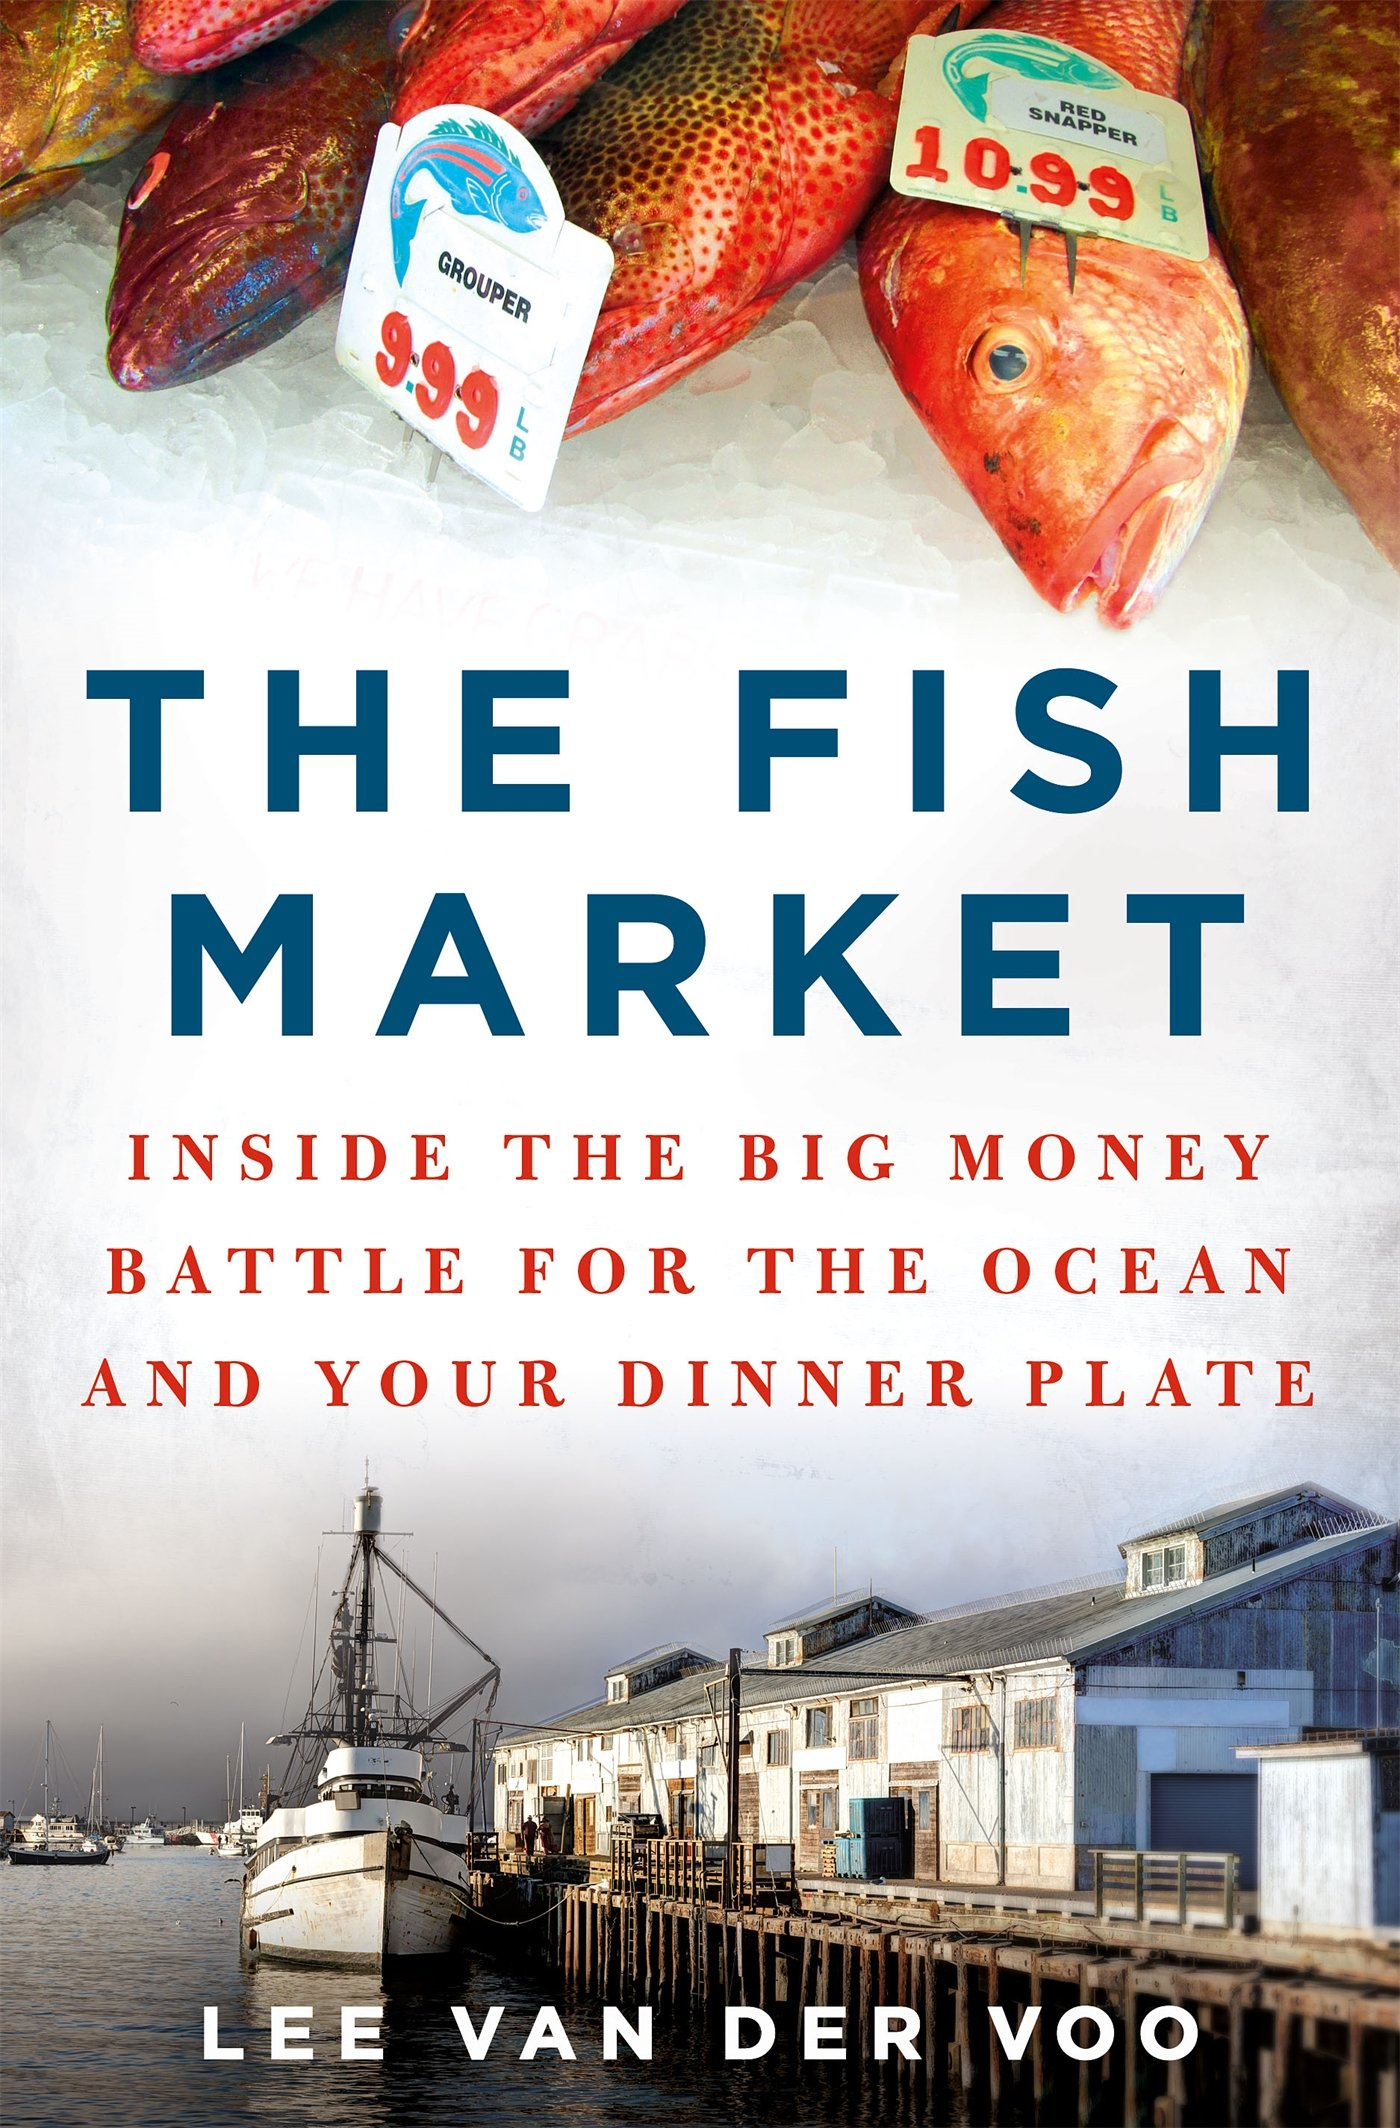 The Fish Market by Lee van der Voo